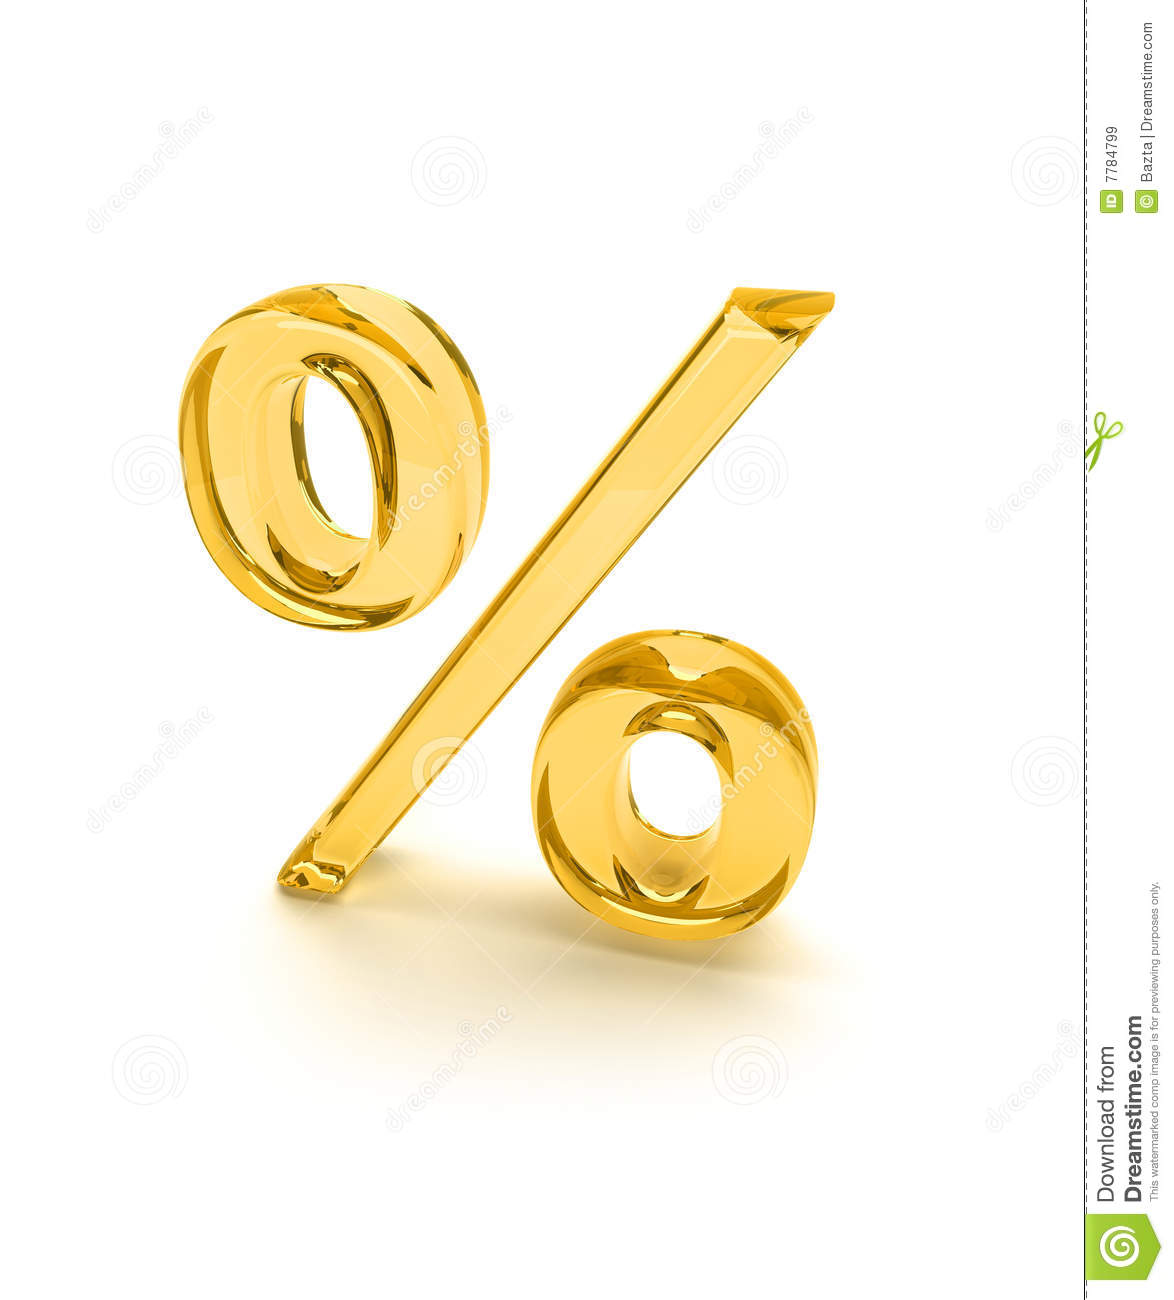 Percent Sign Glass Isolated Stock Illustration  Image. How To Become A Gynecologist. Online Doctoral Degree Programs In Education. University Of Houston Victoria. Website Design Delaware How To Manage Payroll. A Trip Through Our Solar System. Baker University Online Goodwill Cleveland Oh. Meriwest Mortgage Rates Lvn Program San Diego. How To Check If Port 25 Is Open